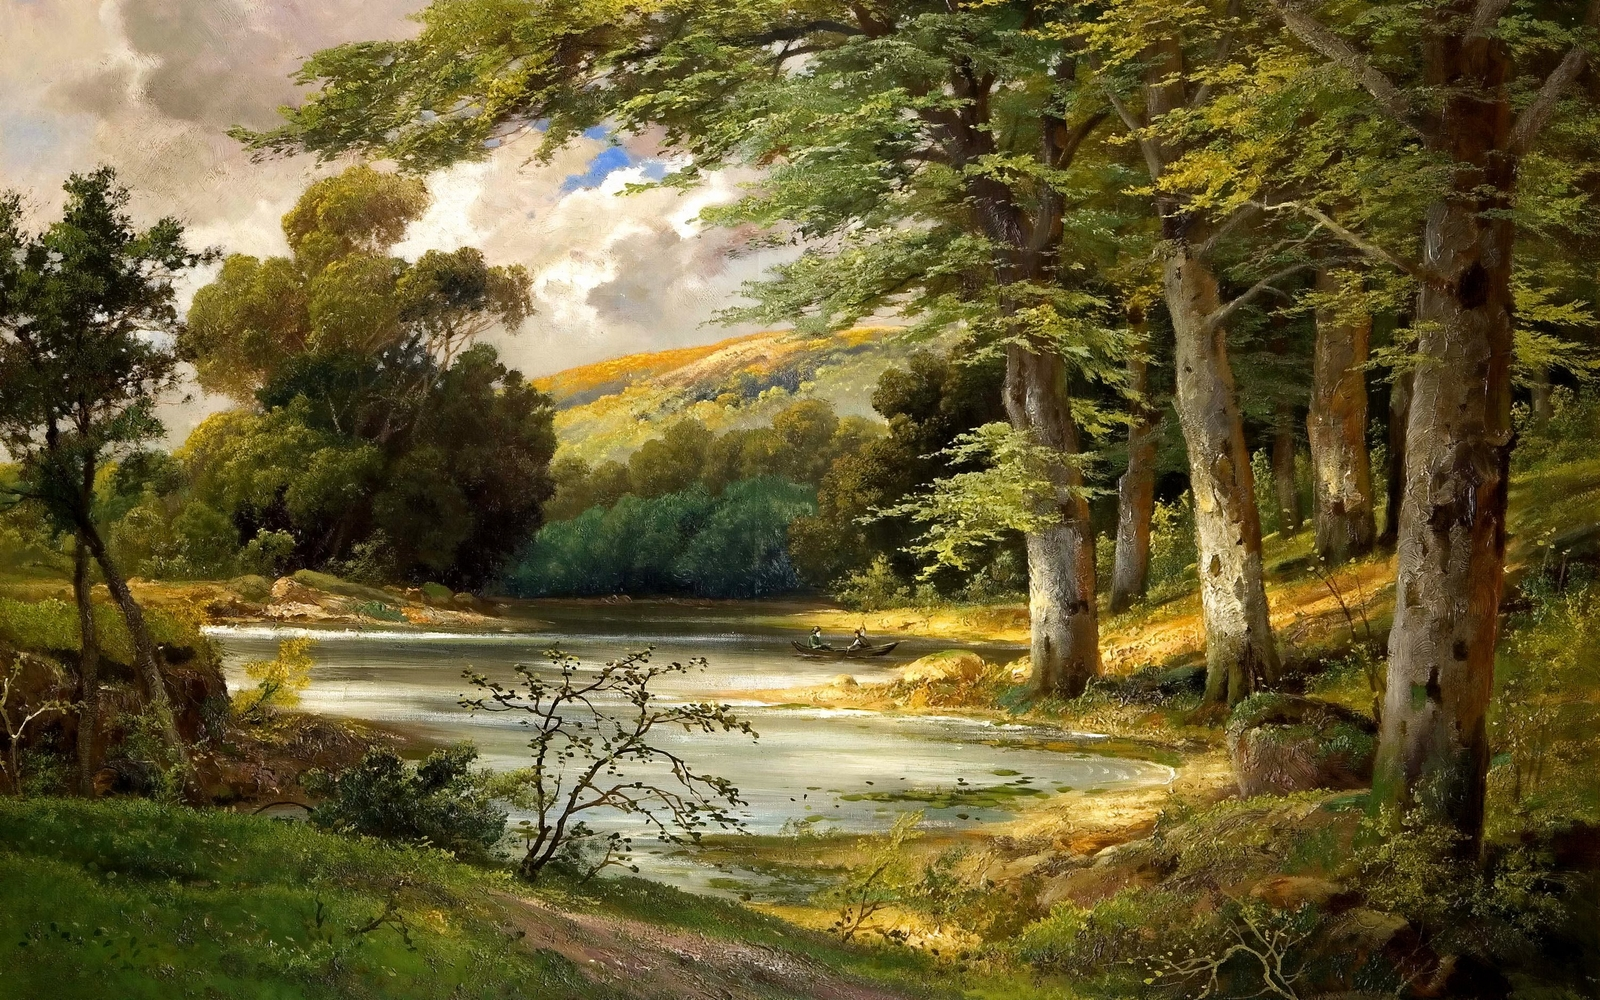 romanticisms effect on landscape art Romanticism was an artistic and intellectual movement in the history of ideas that originated in late 18th century western europeromanticism is also noted for its elevation of the achievements of what it perceived as heroic individuals and artists.